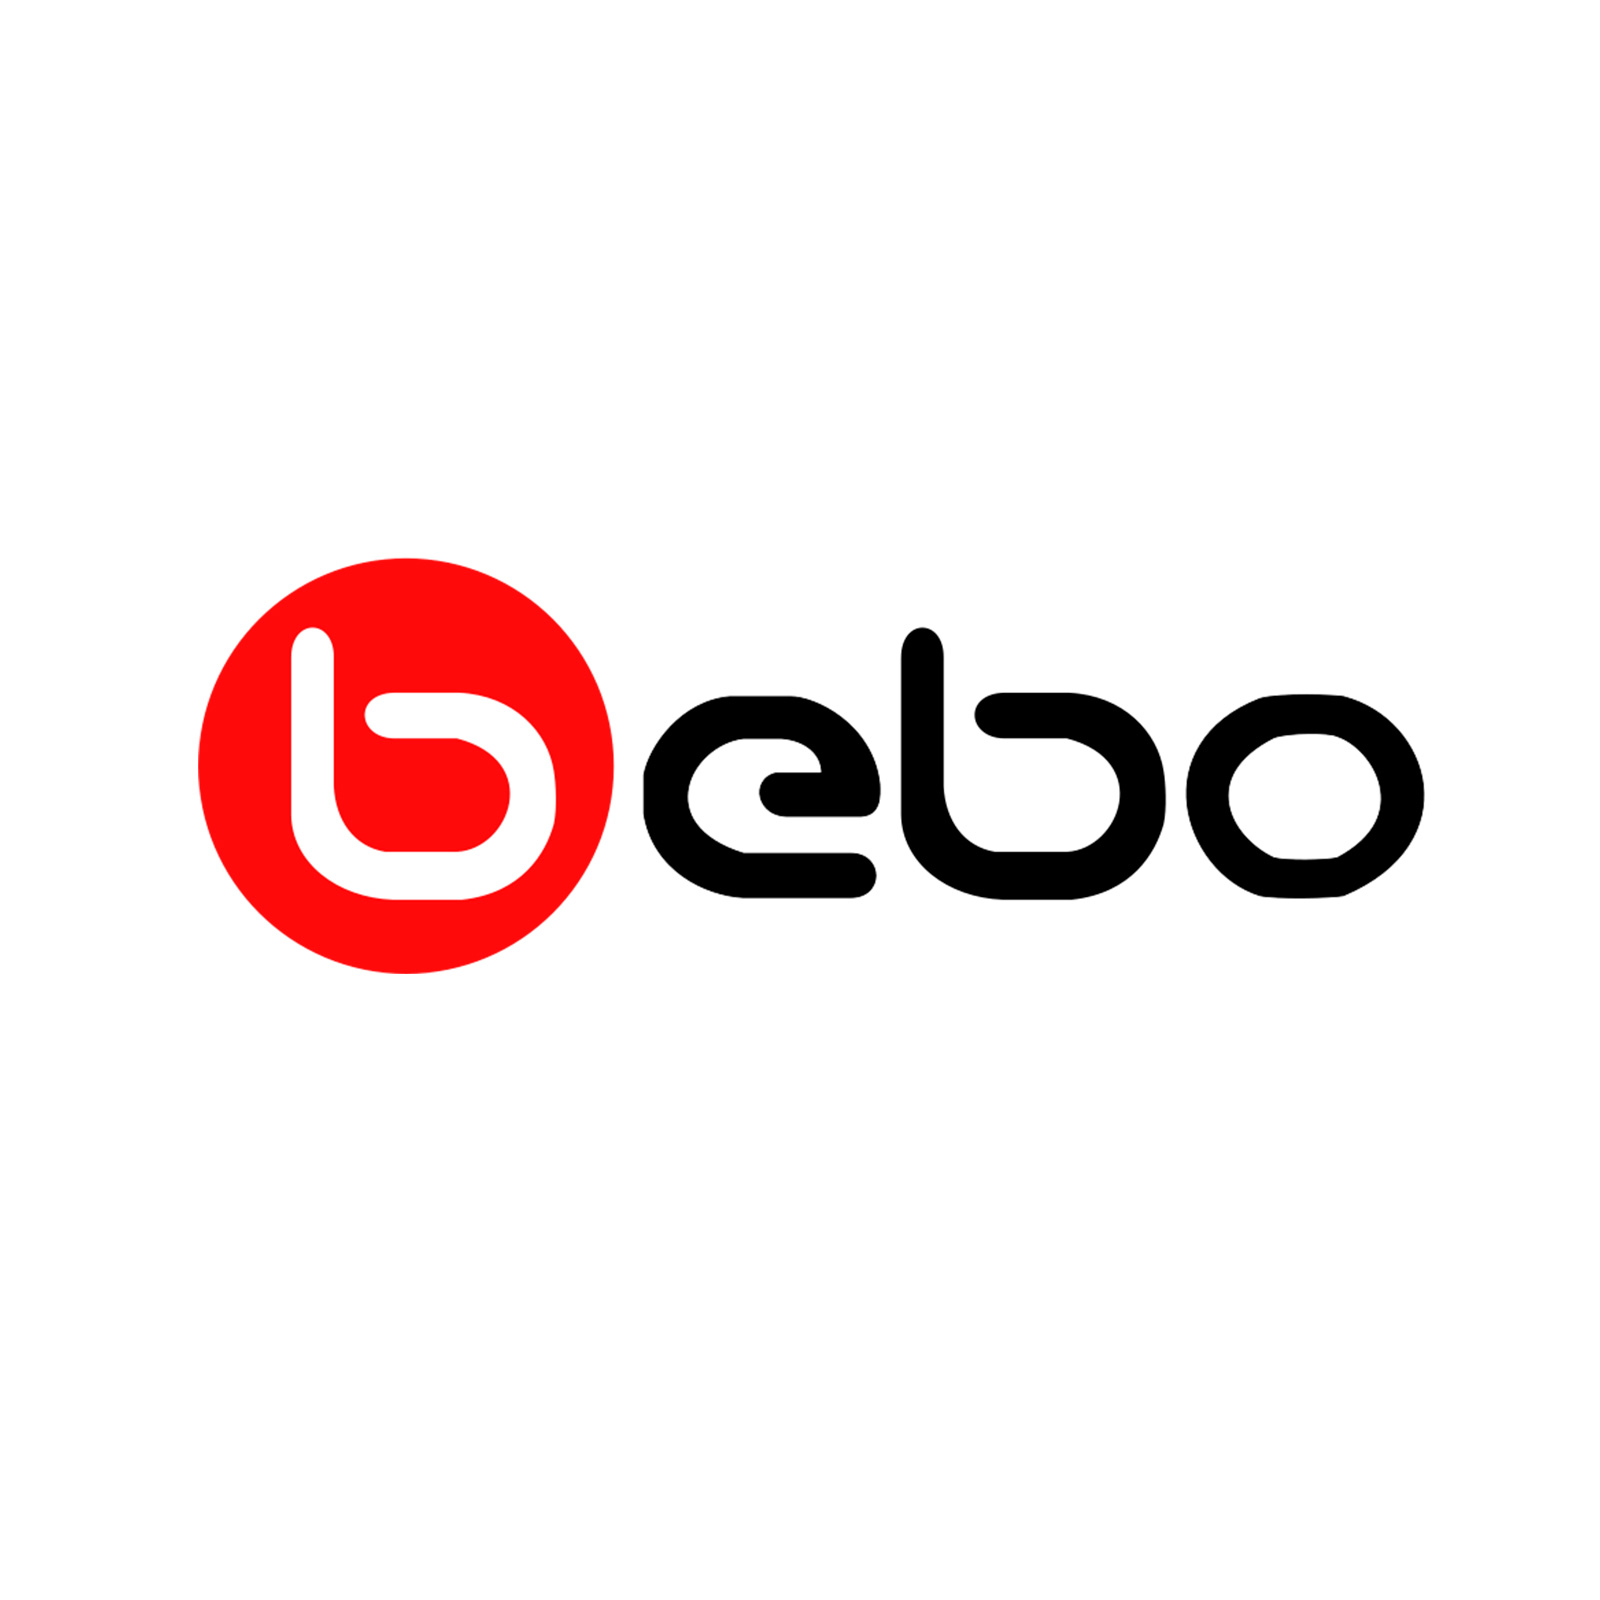 "Bebo was a social networking website launched in 2005, that now describes itself as ""a company that dreams up ideas for fun social apps"